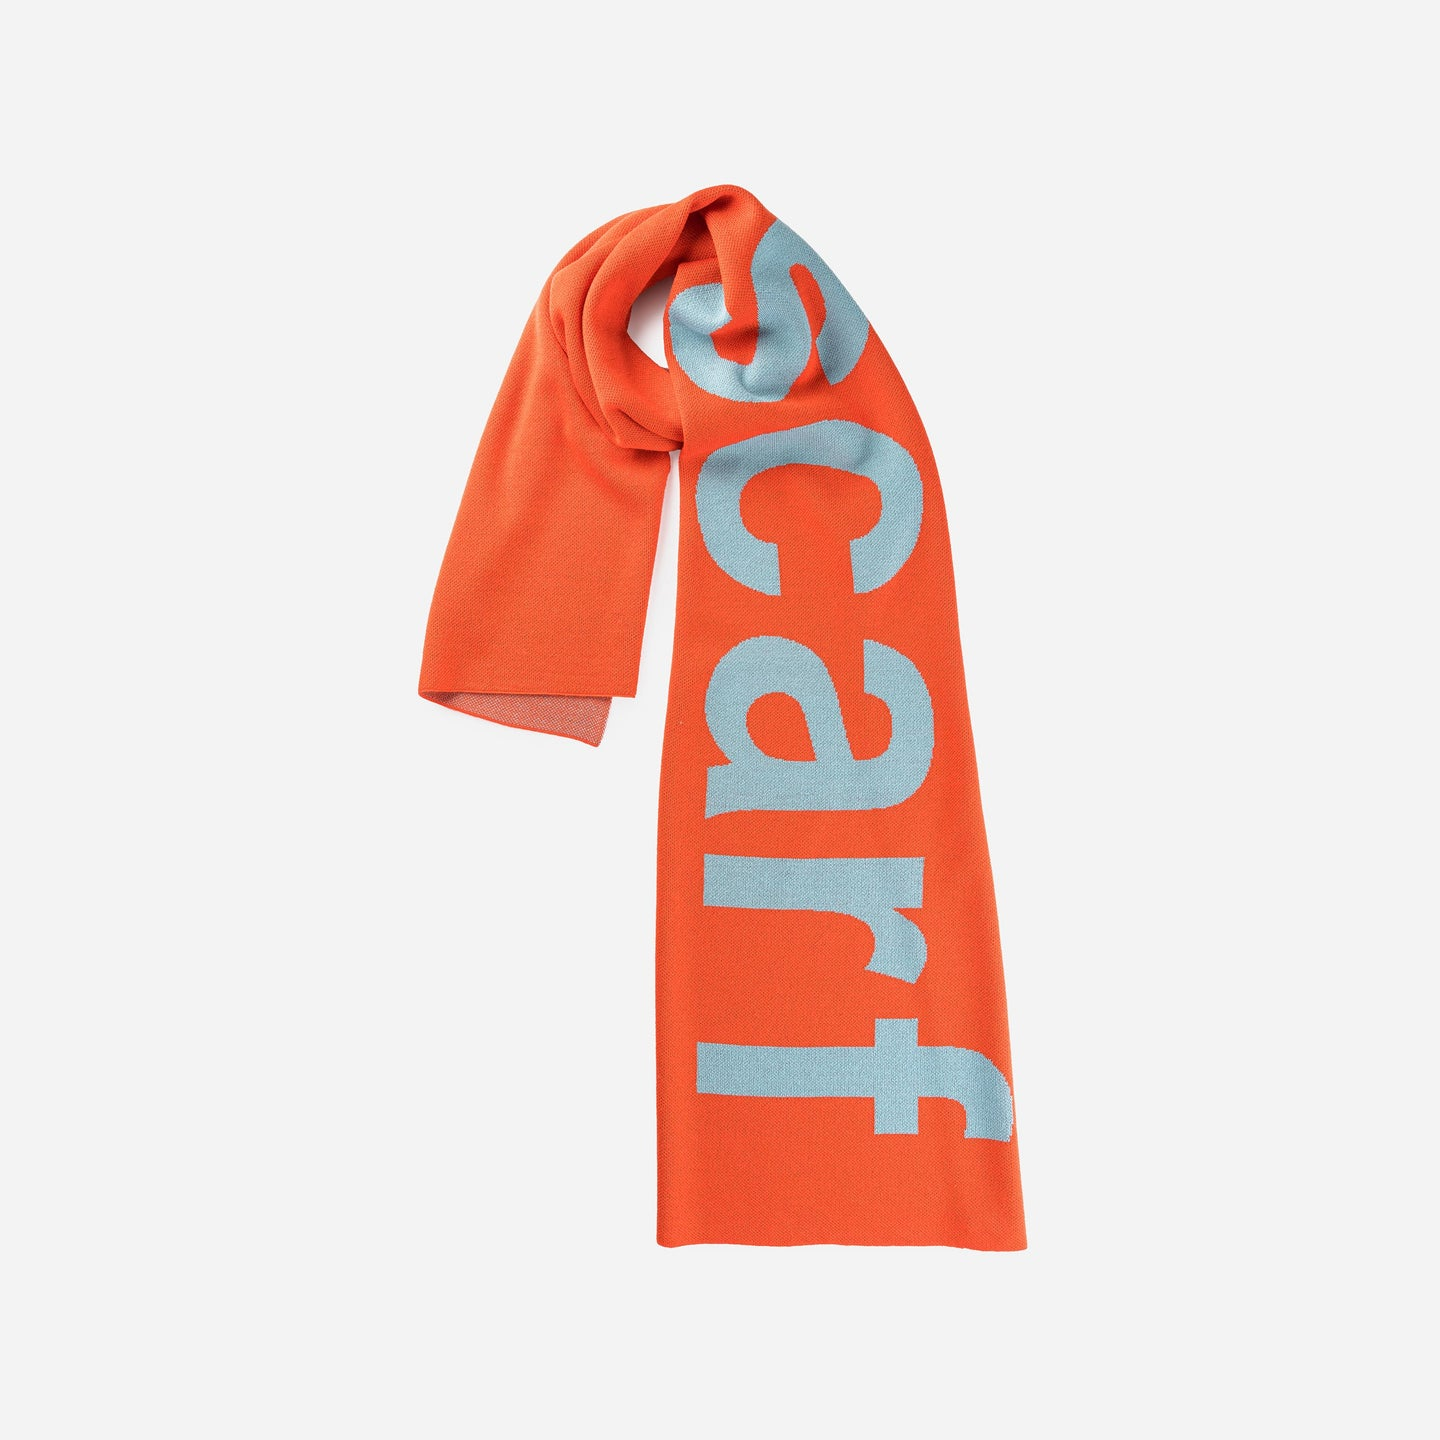 Scarf Scarf Scarf Oversized Type Letters Scarf Knit